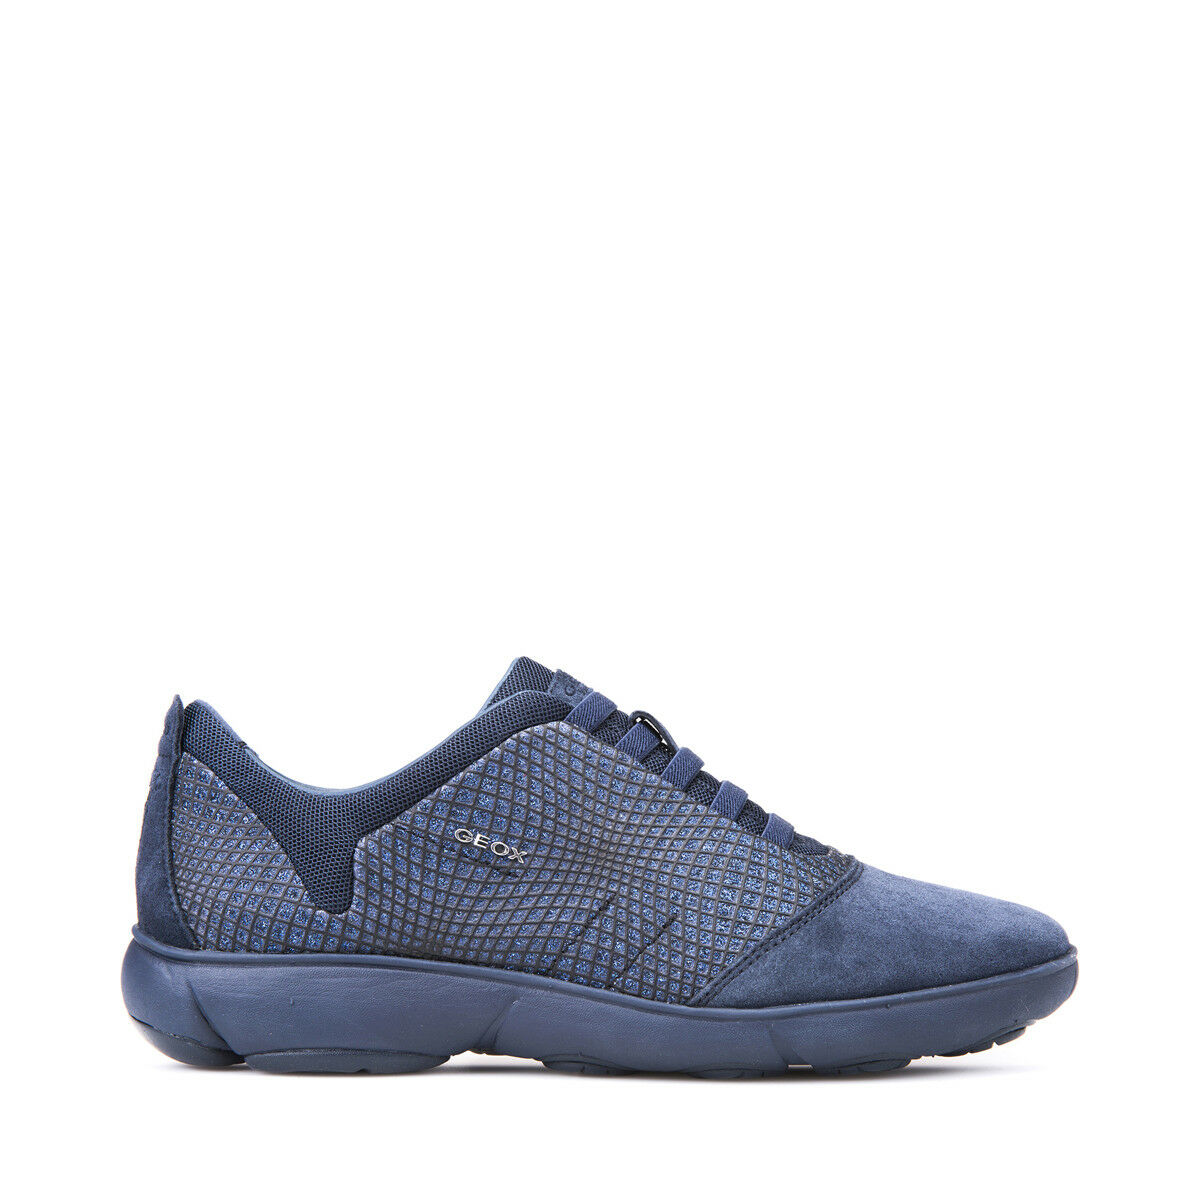 GEOX SCARPE DONNA NEBULA SNEAKERS SLIP-ON COMODE IN CAMOSCIO NAVY D741EA COMODE SLIP-ON 9d6bad